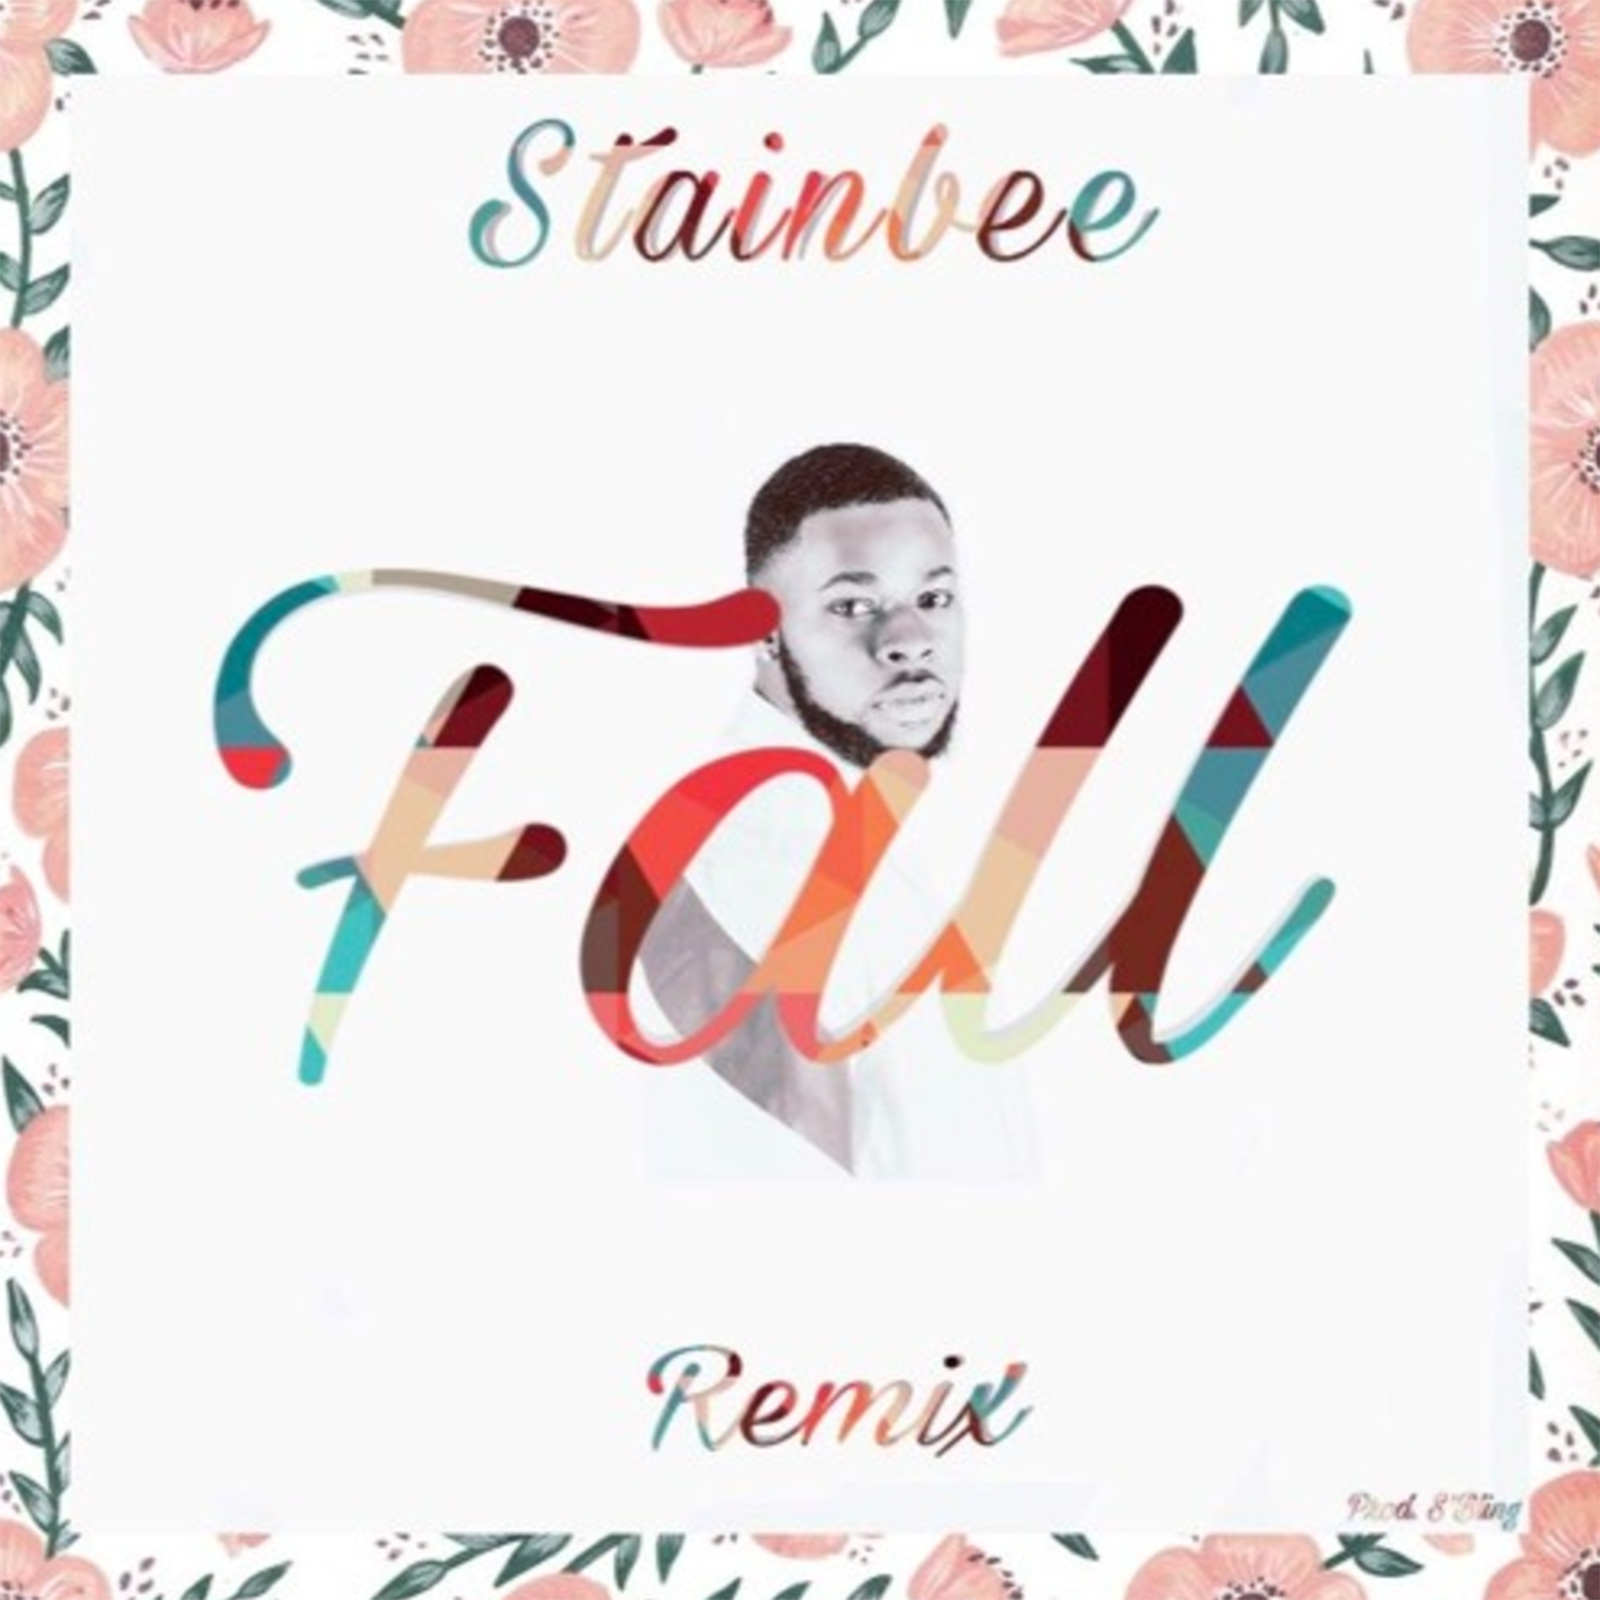 Fall (Davido cover) by Stainbee